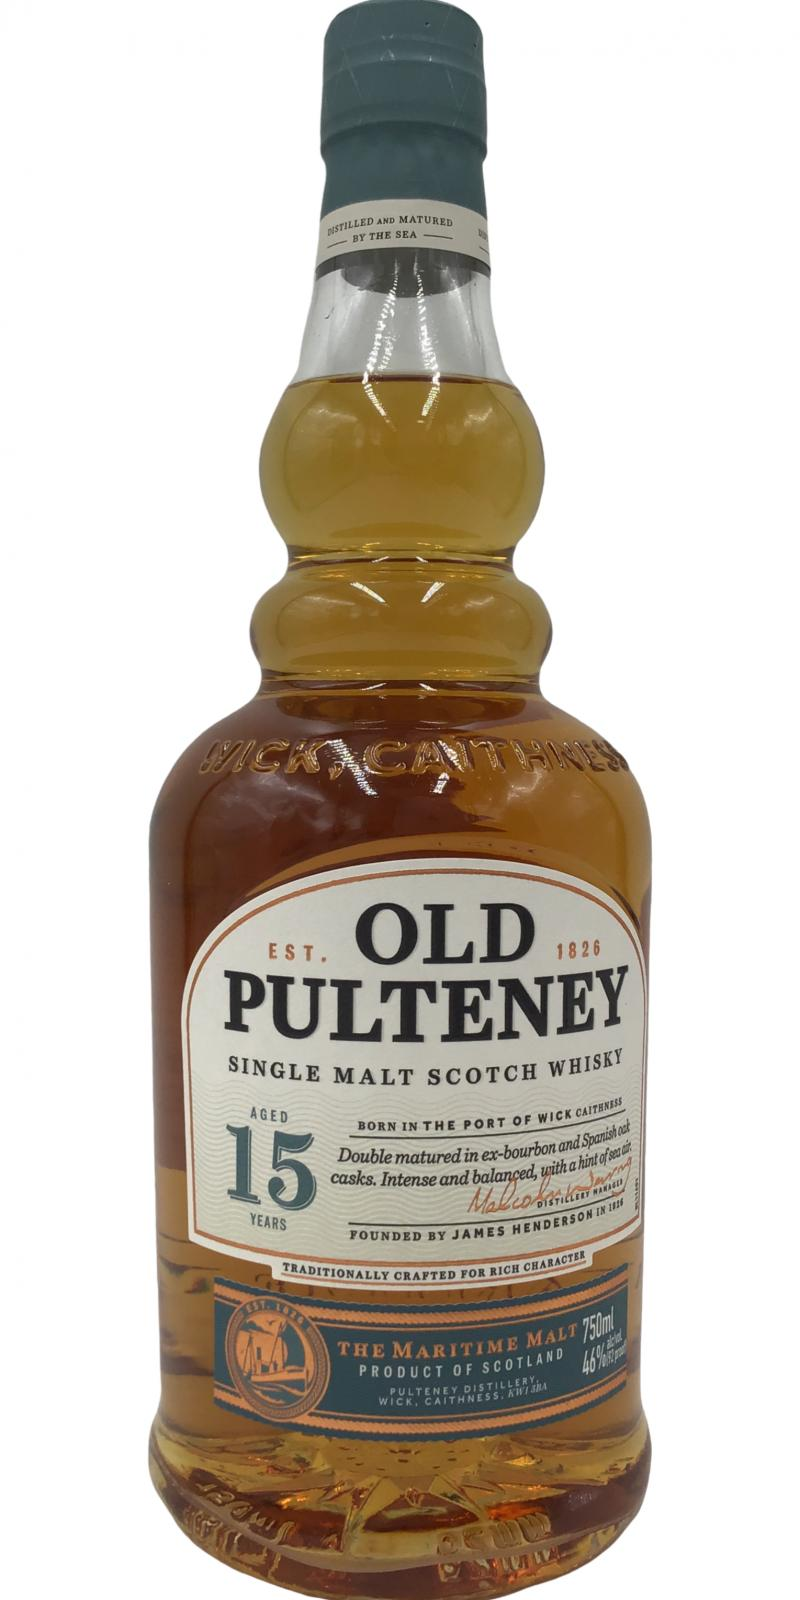 Old Pulteney 15-year old